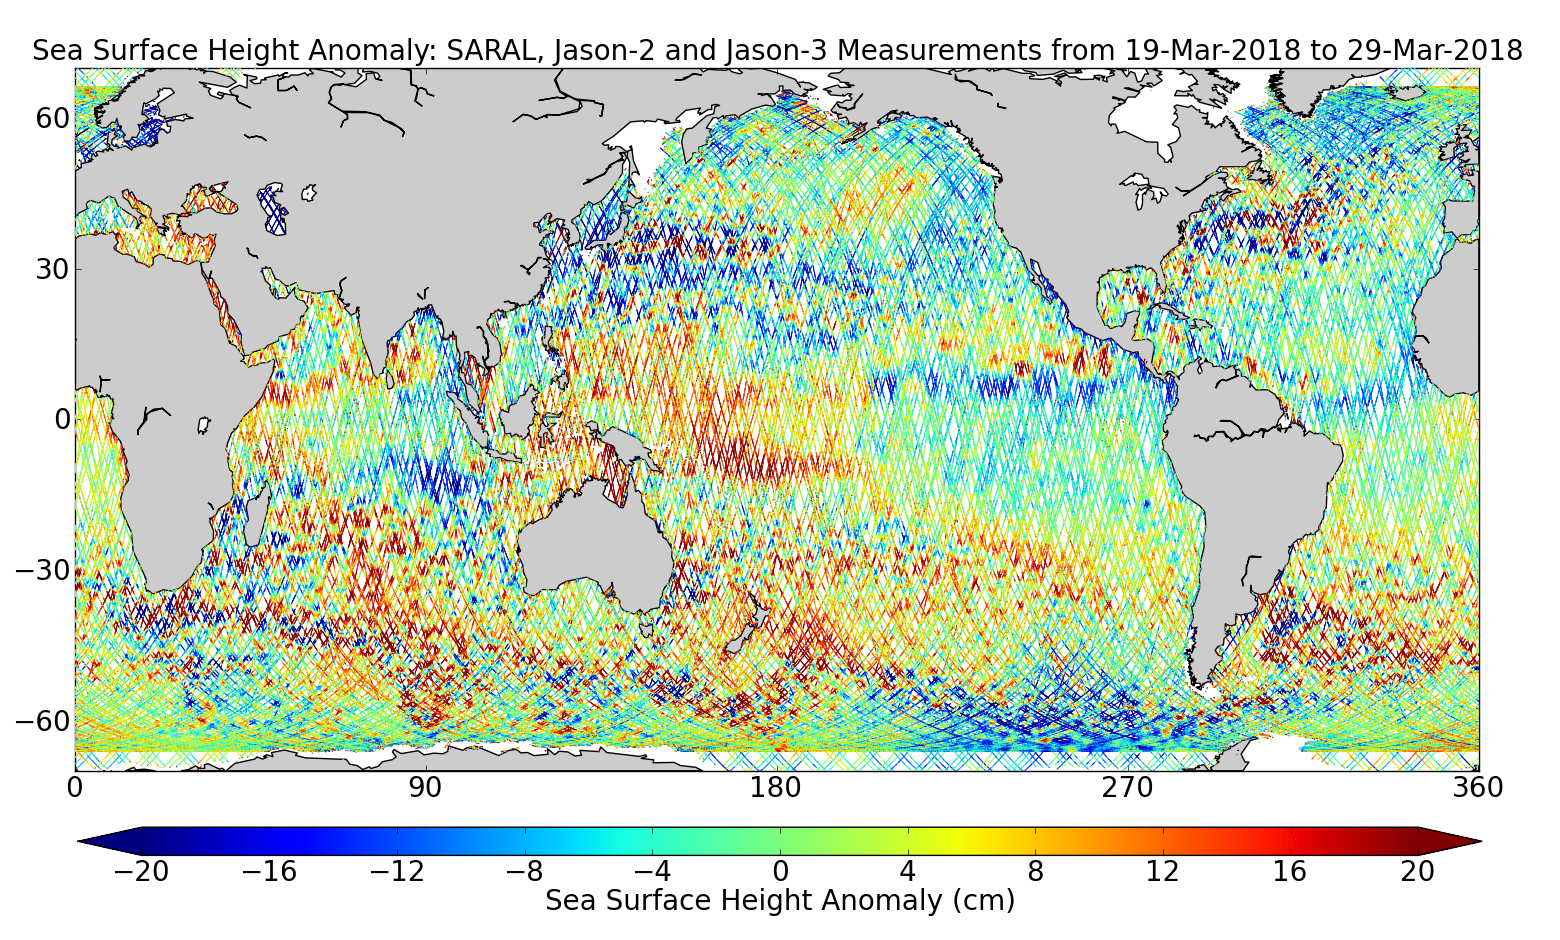 Sea Surface Height Anomaly: SARAL, Jason-2 and Jason-3 Measurements from 19-Mar-2018 to 29-Mar-2018